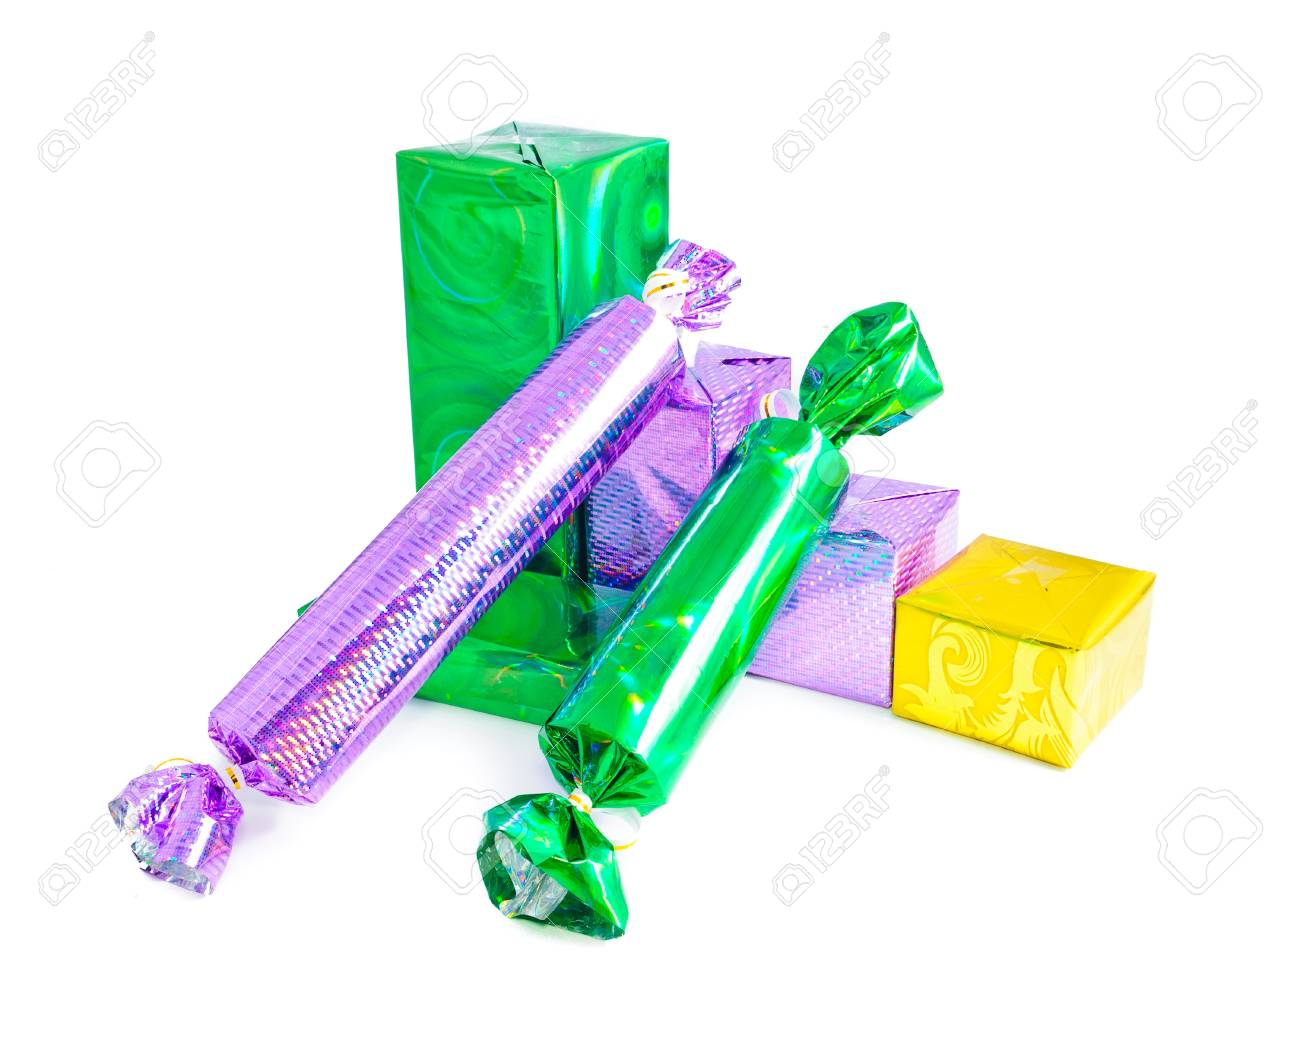 Christmas Gifts For The Whole Family. Multi-colored Boxes That ...